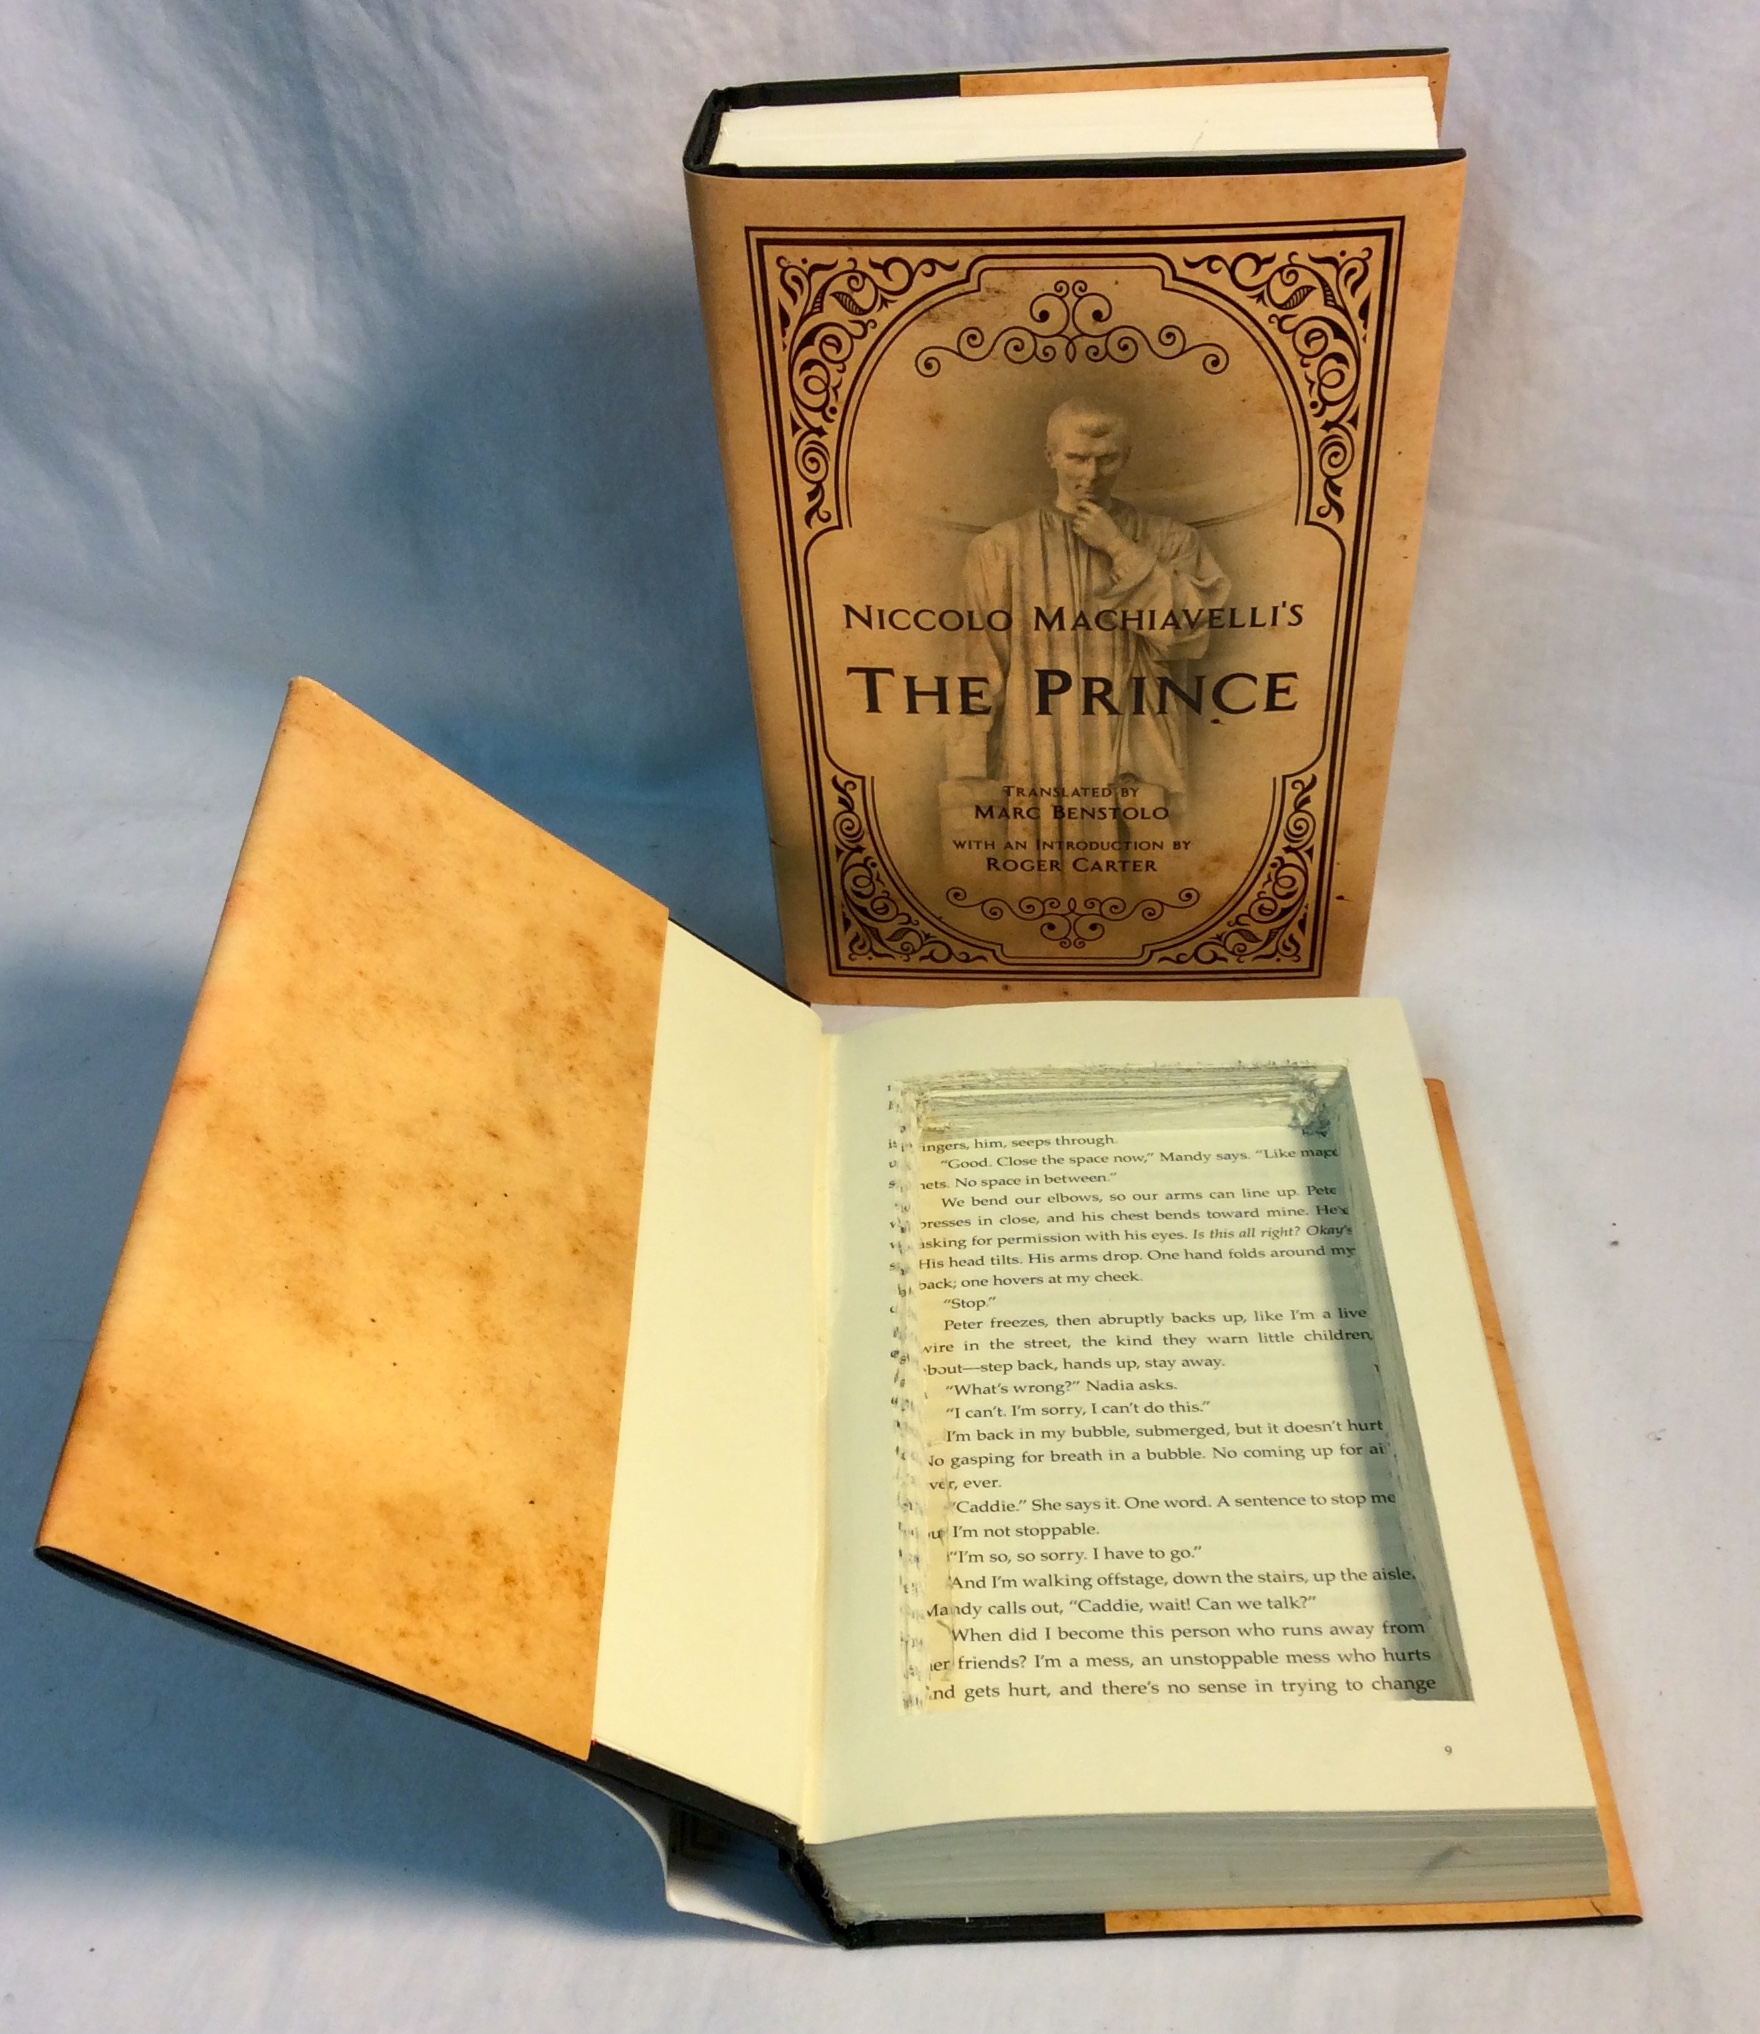 Hollowed-out hardcover book